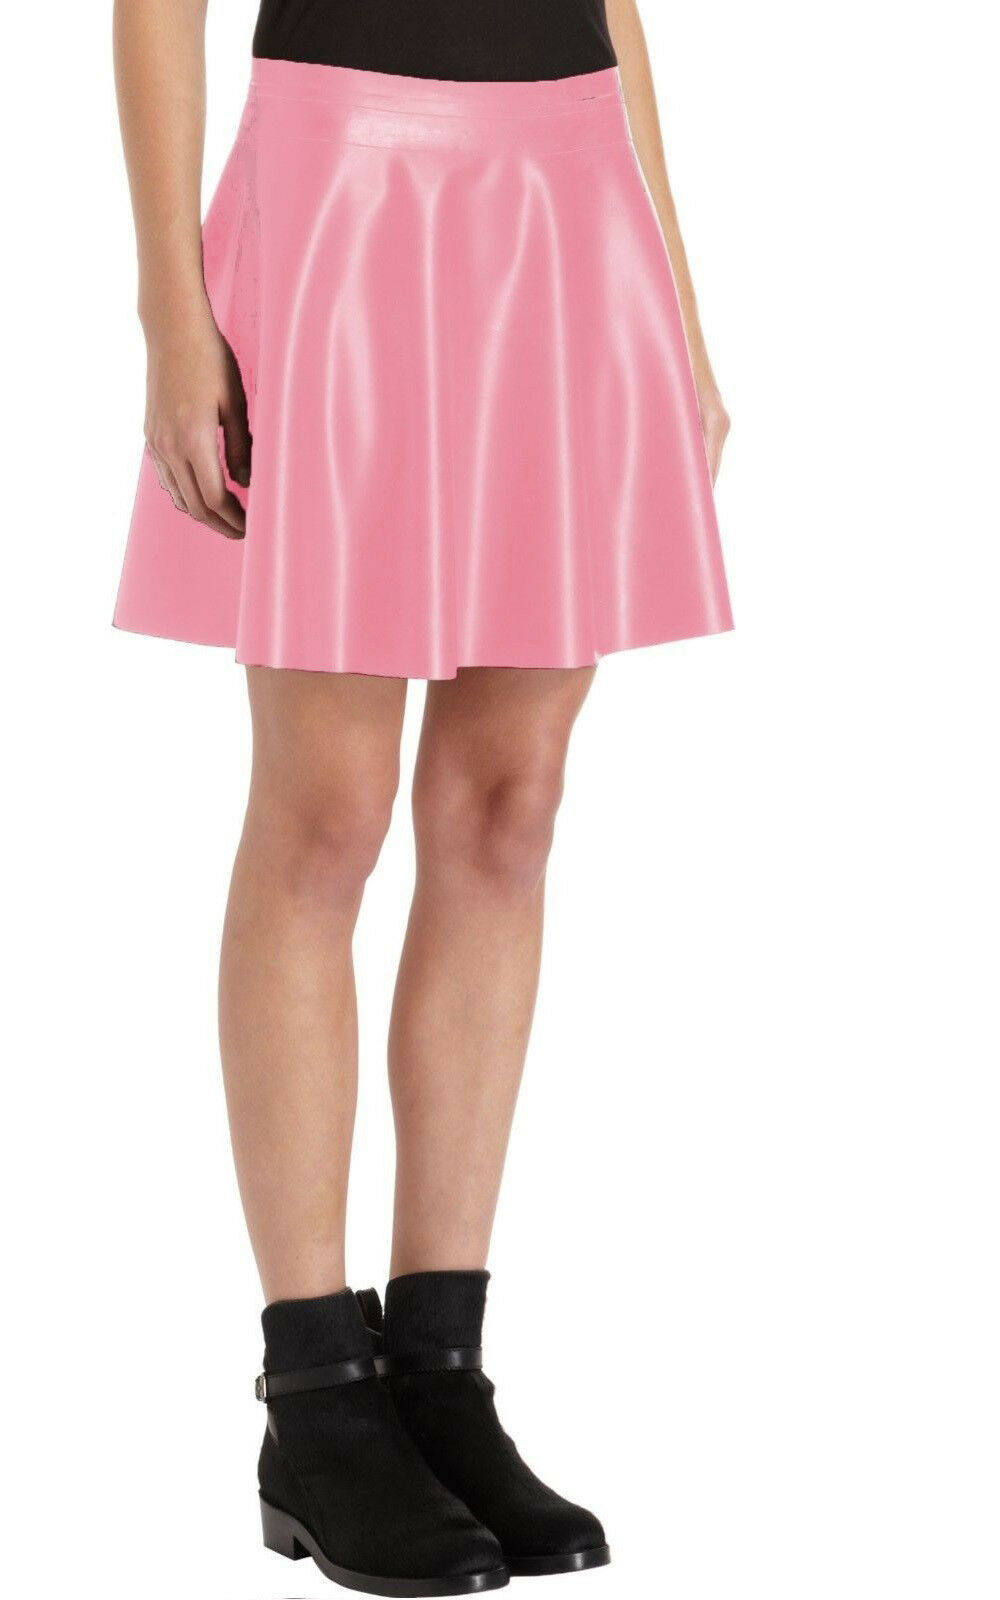 Opening Ceremony Pink Spandex Mini Skirt  - Medium Large